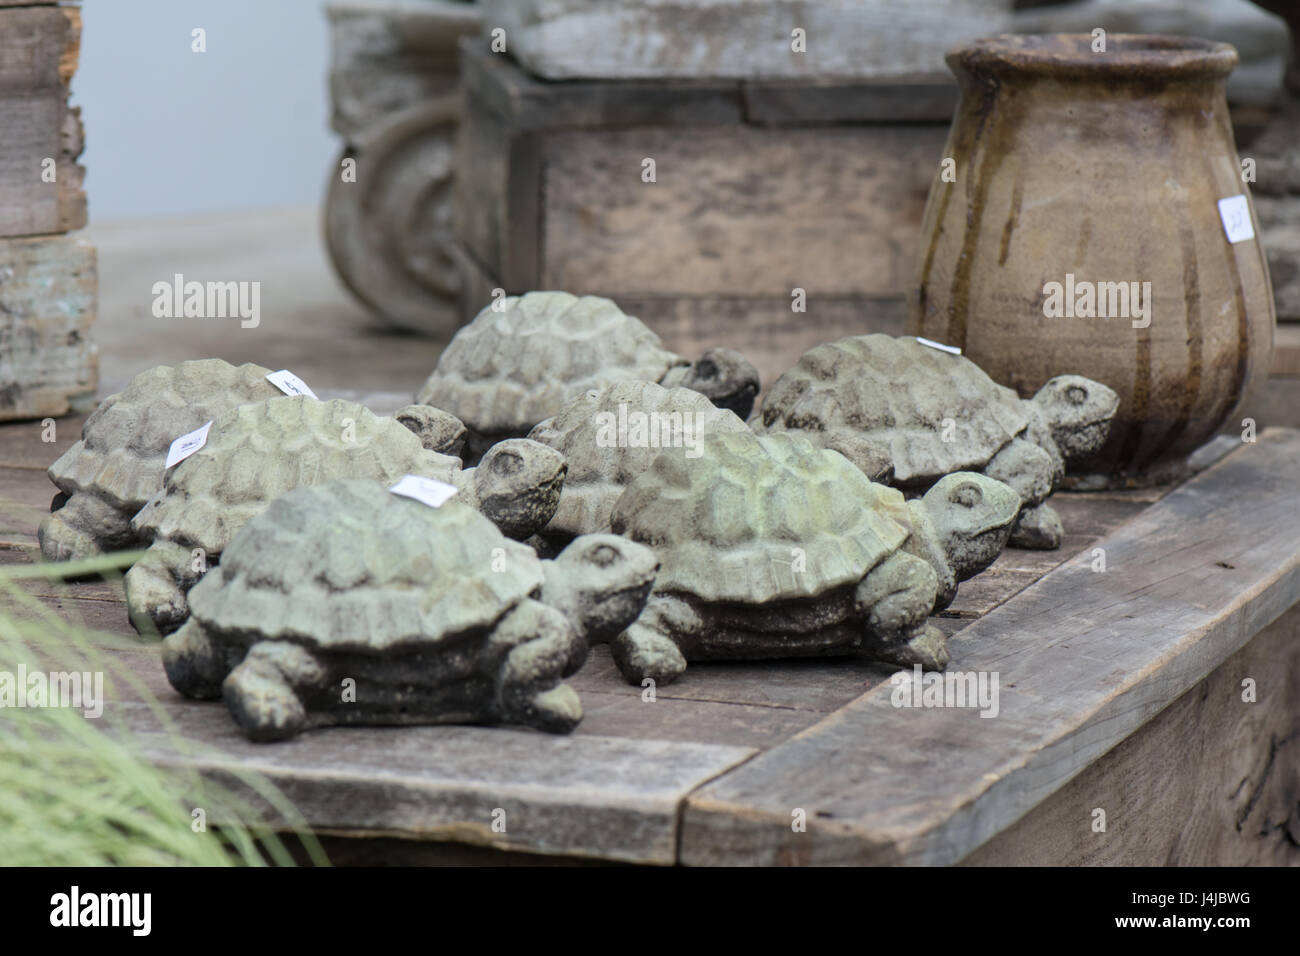 Slow and steady wins the race with this group of turtles. - Stock Image